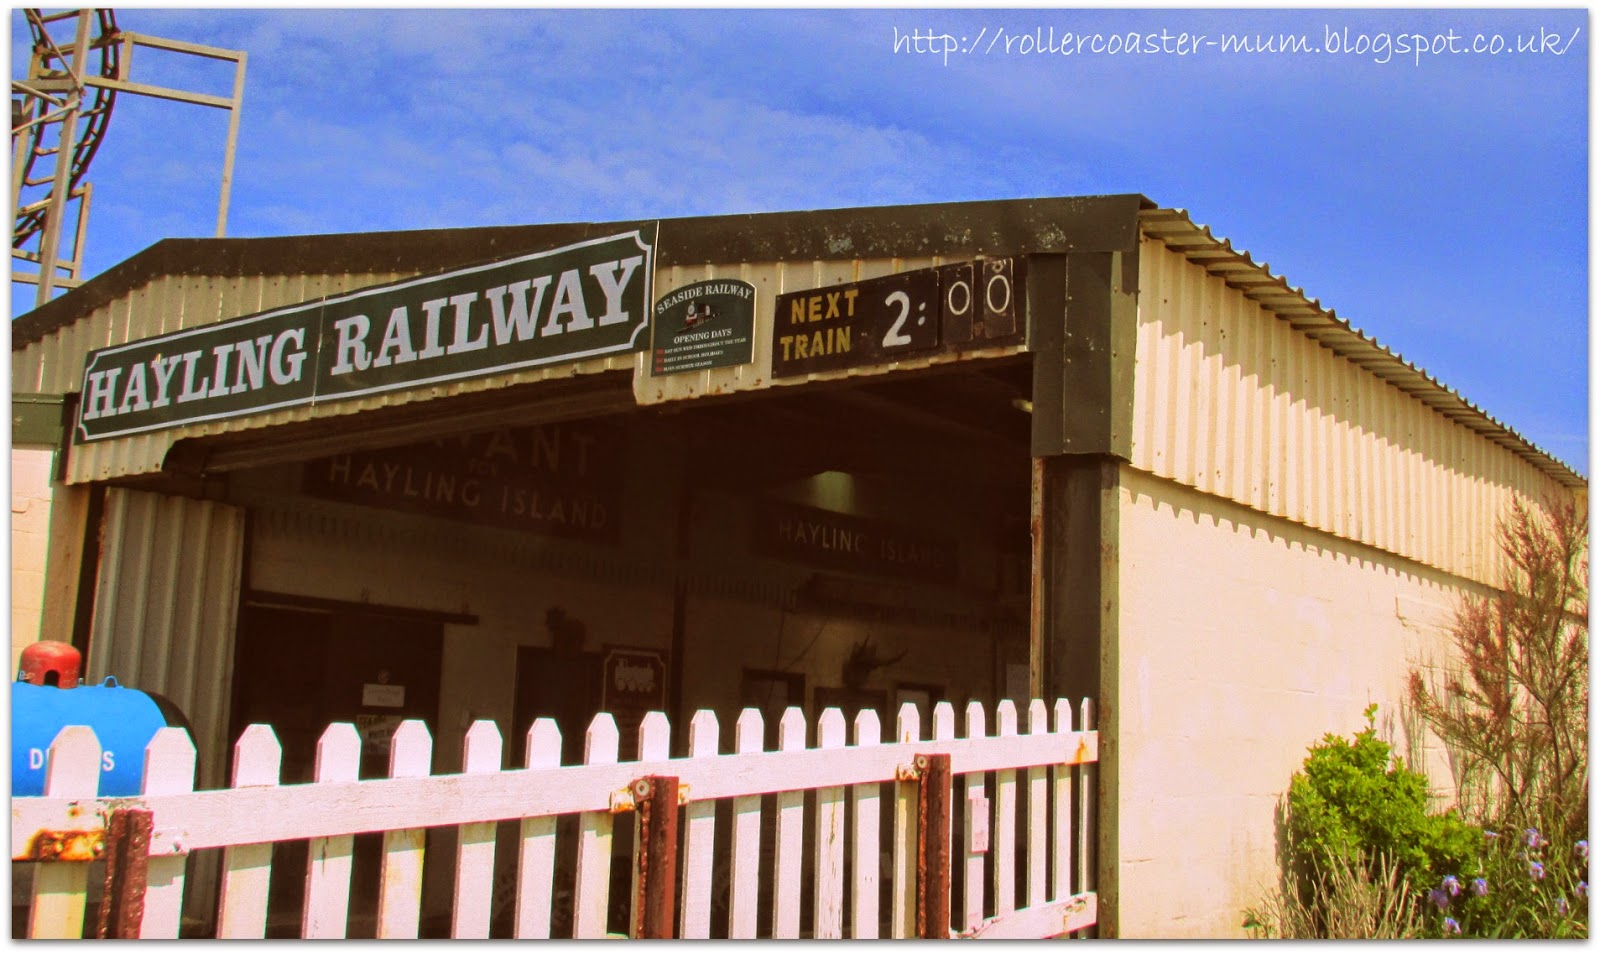 The Friendly Little Railway - Beachlands Station, Hayling Island